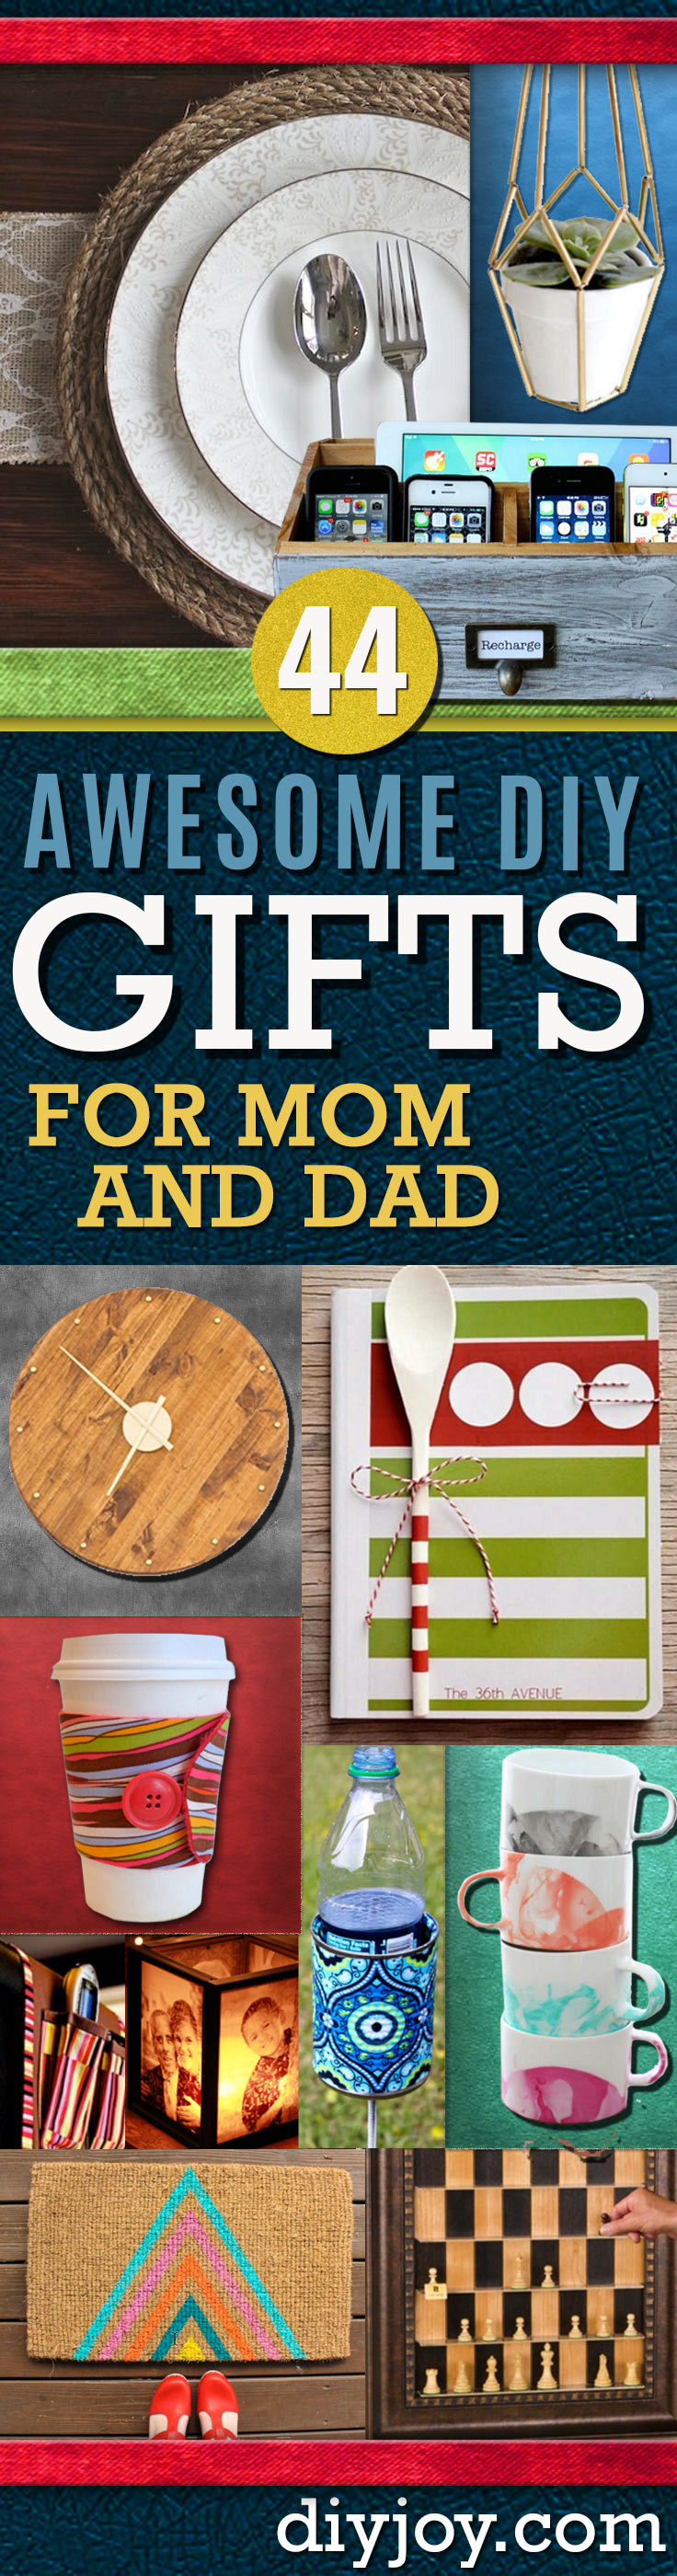 Best ideas about DIY Gifts For Mom Christmas . Save or Pin Awesome DIY Gift Ideas Mom and Dad Will Love Now.